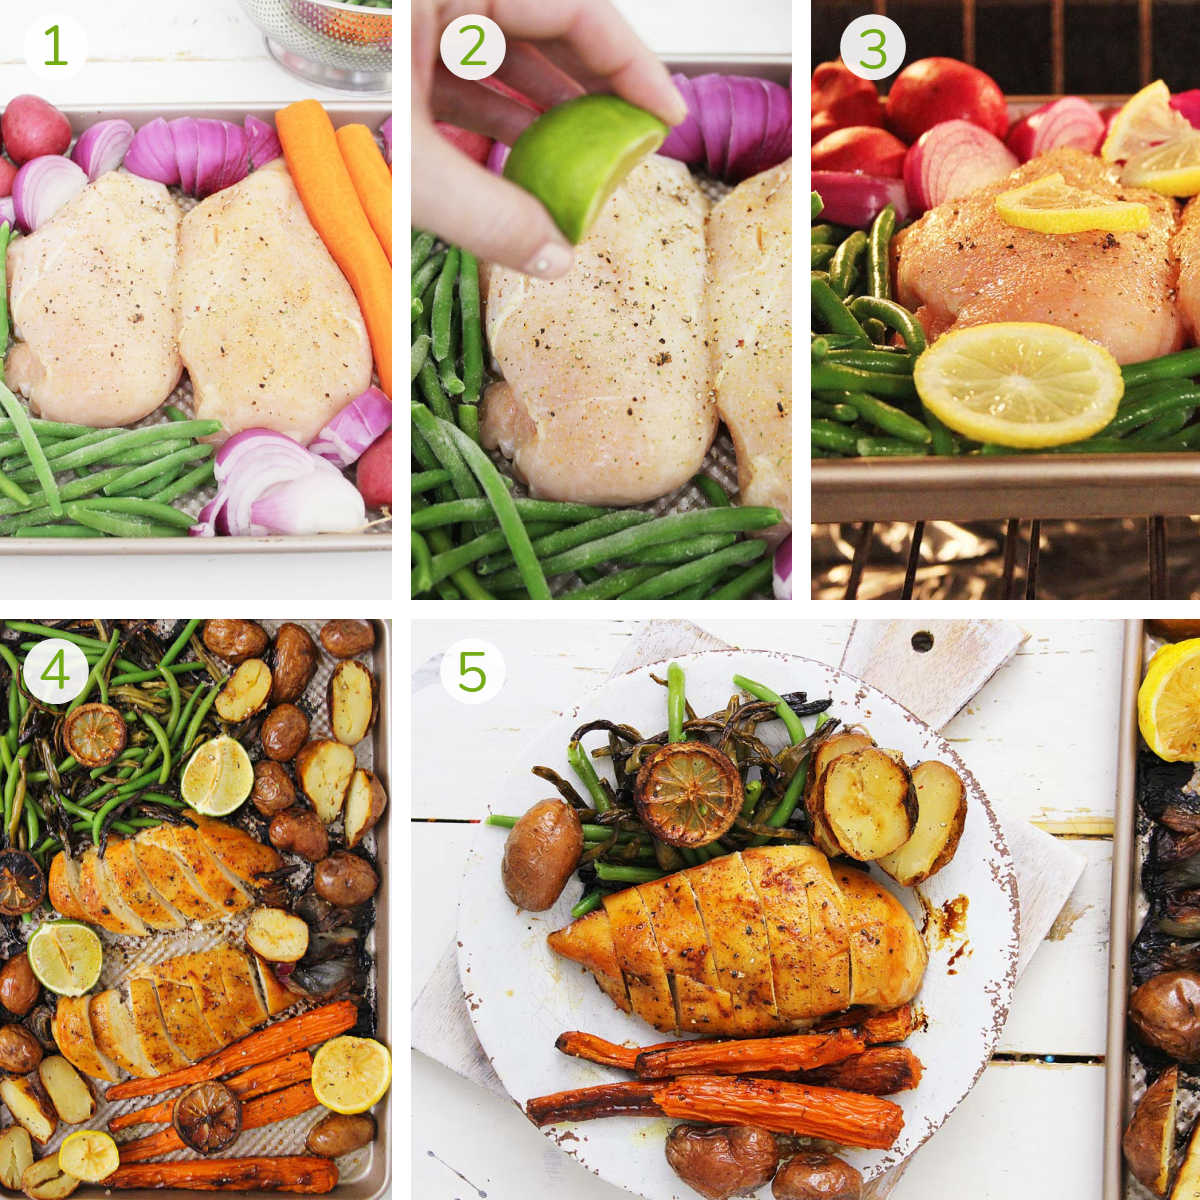 process photos showing adding everything to the sheet pan, putting it in the oven, slicing and serving.